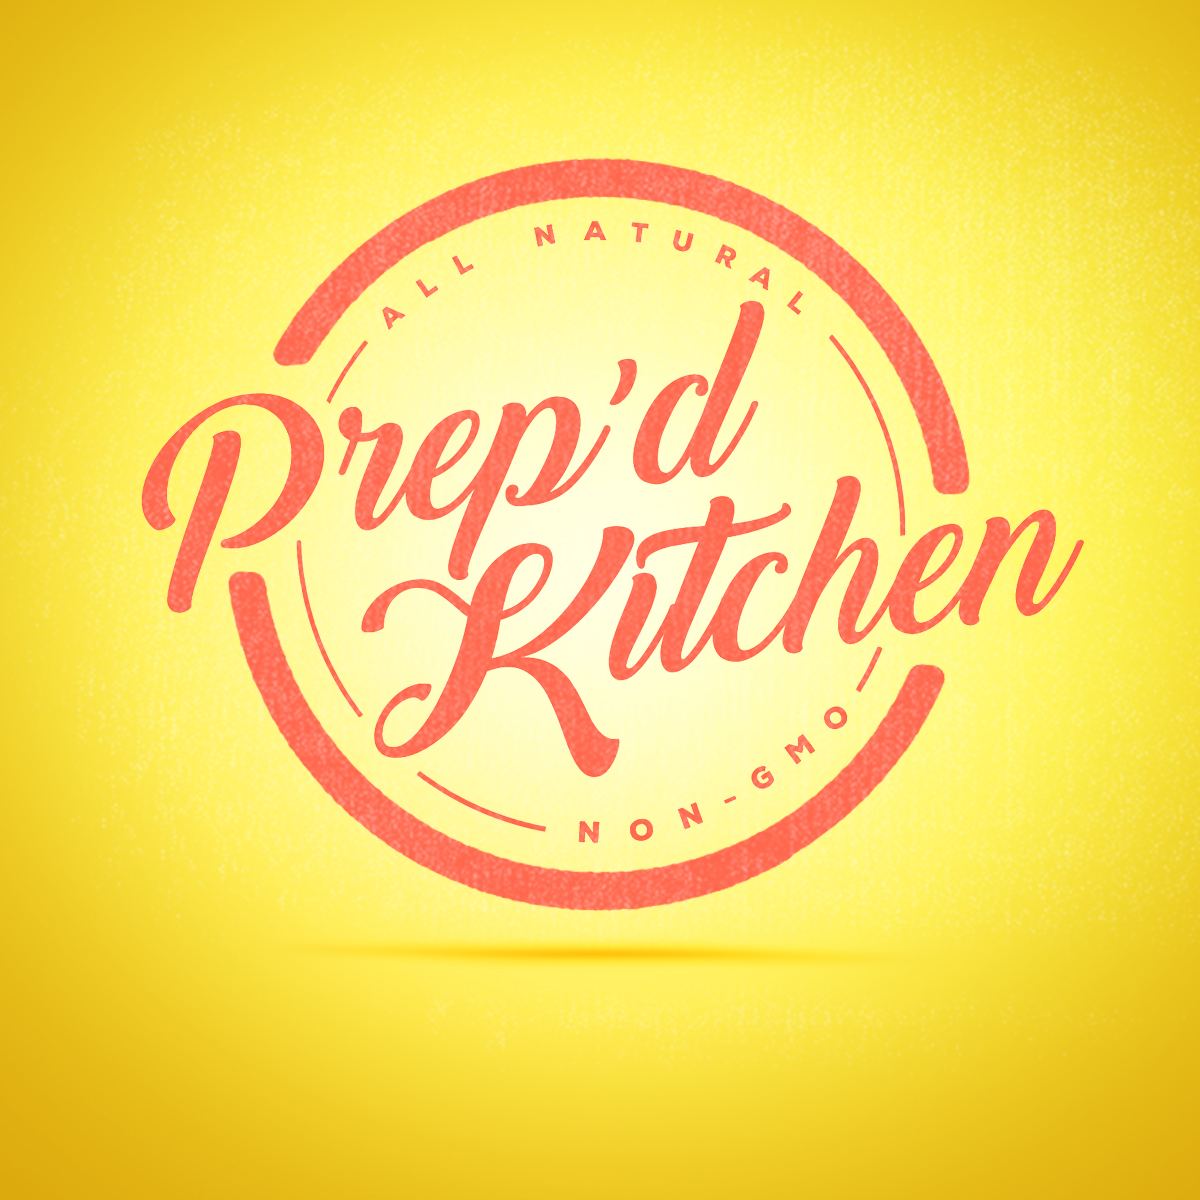 prep'd-kitchen.jpg